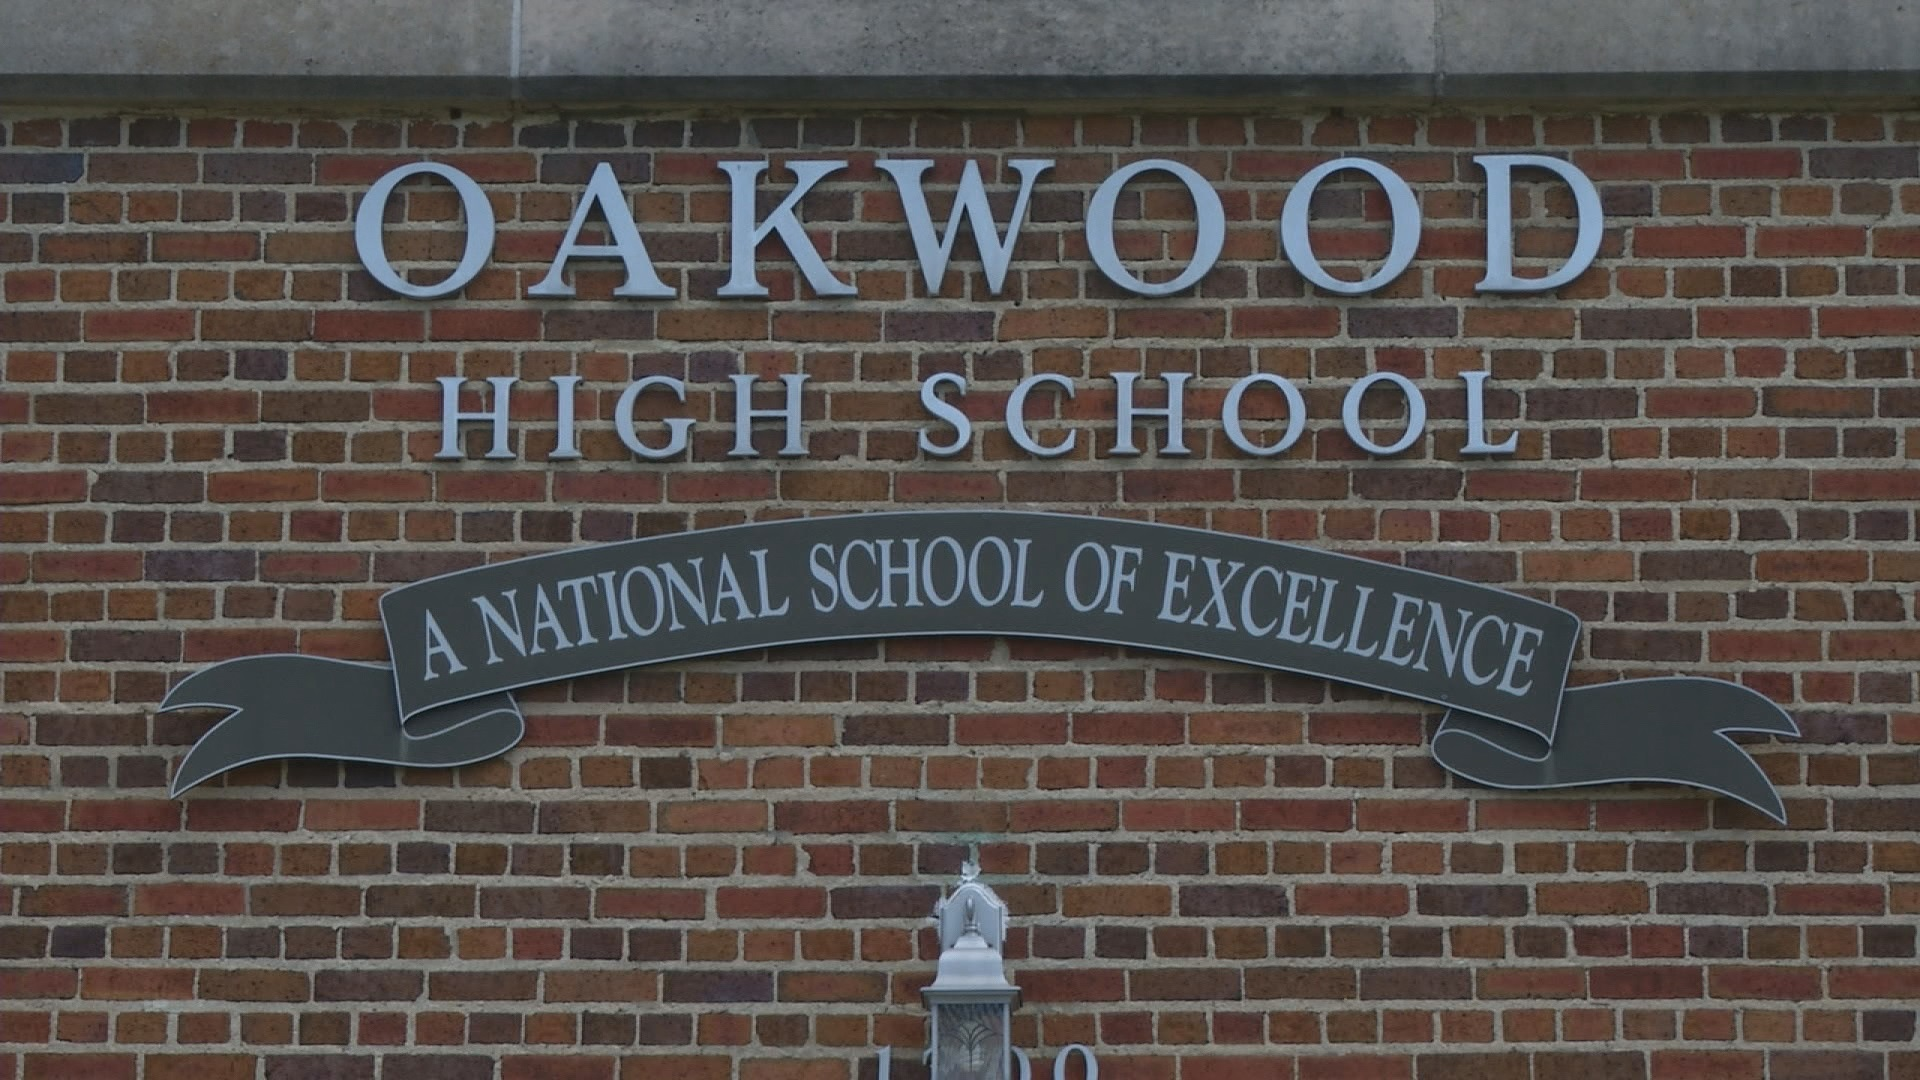 oakwood_1544532914749.jpg